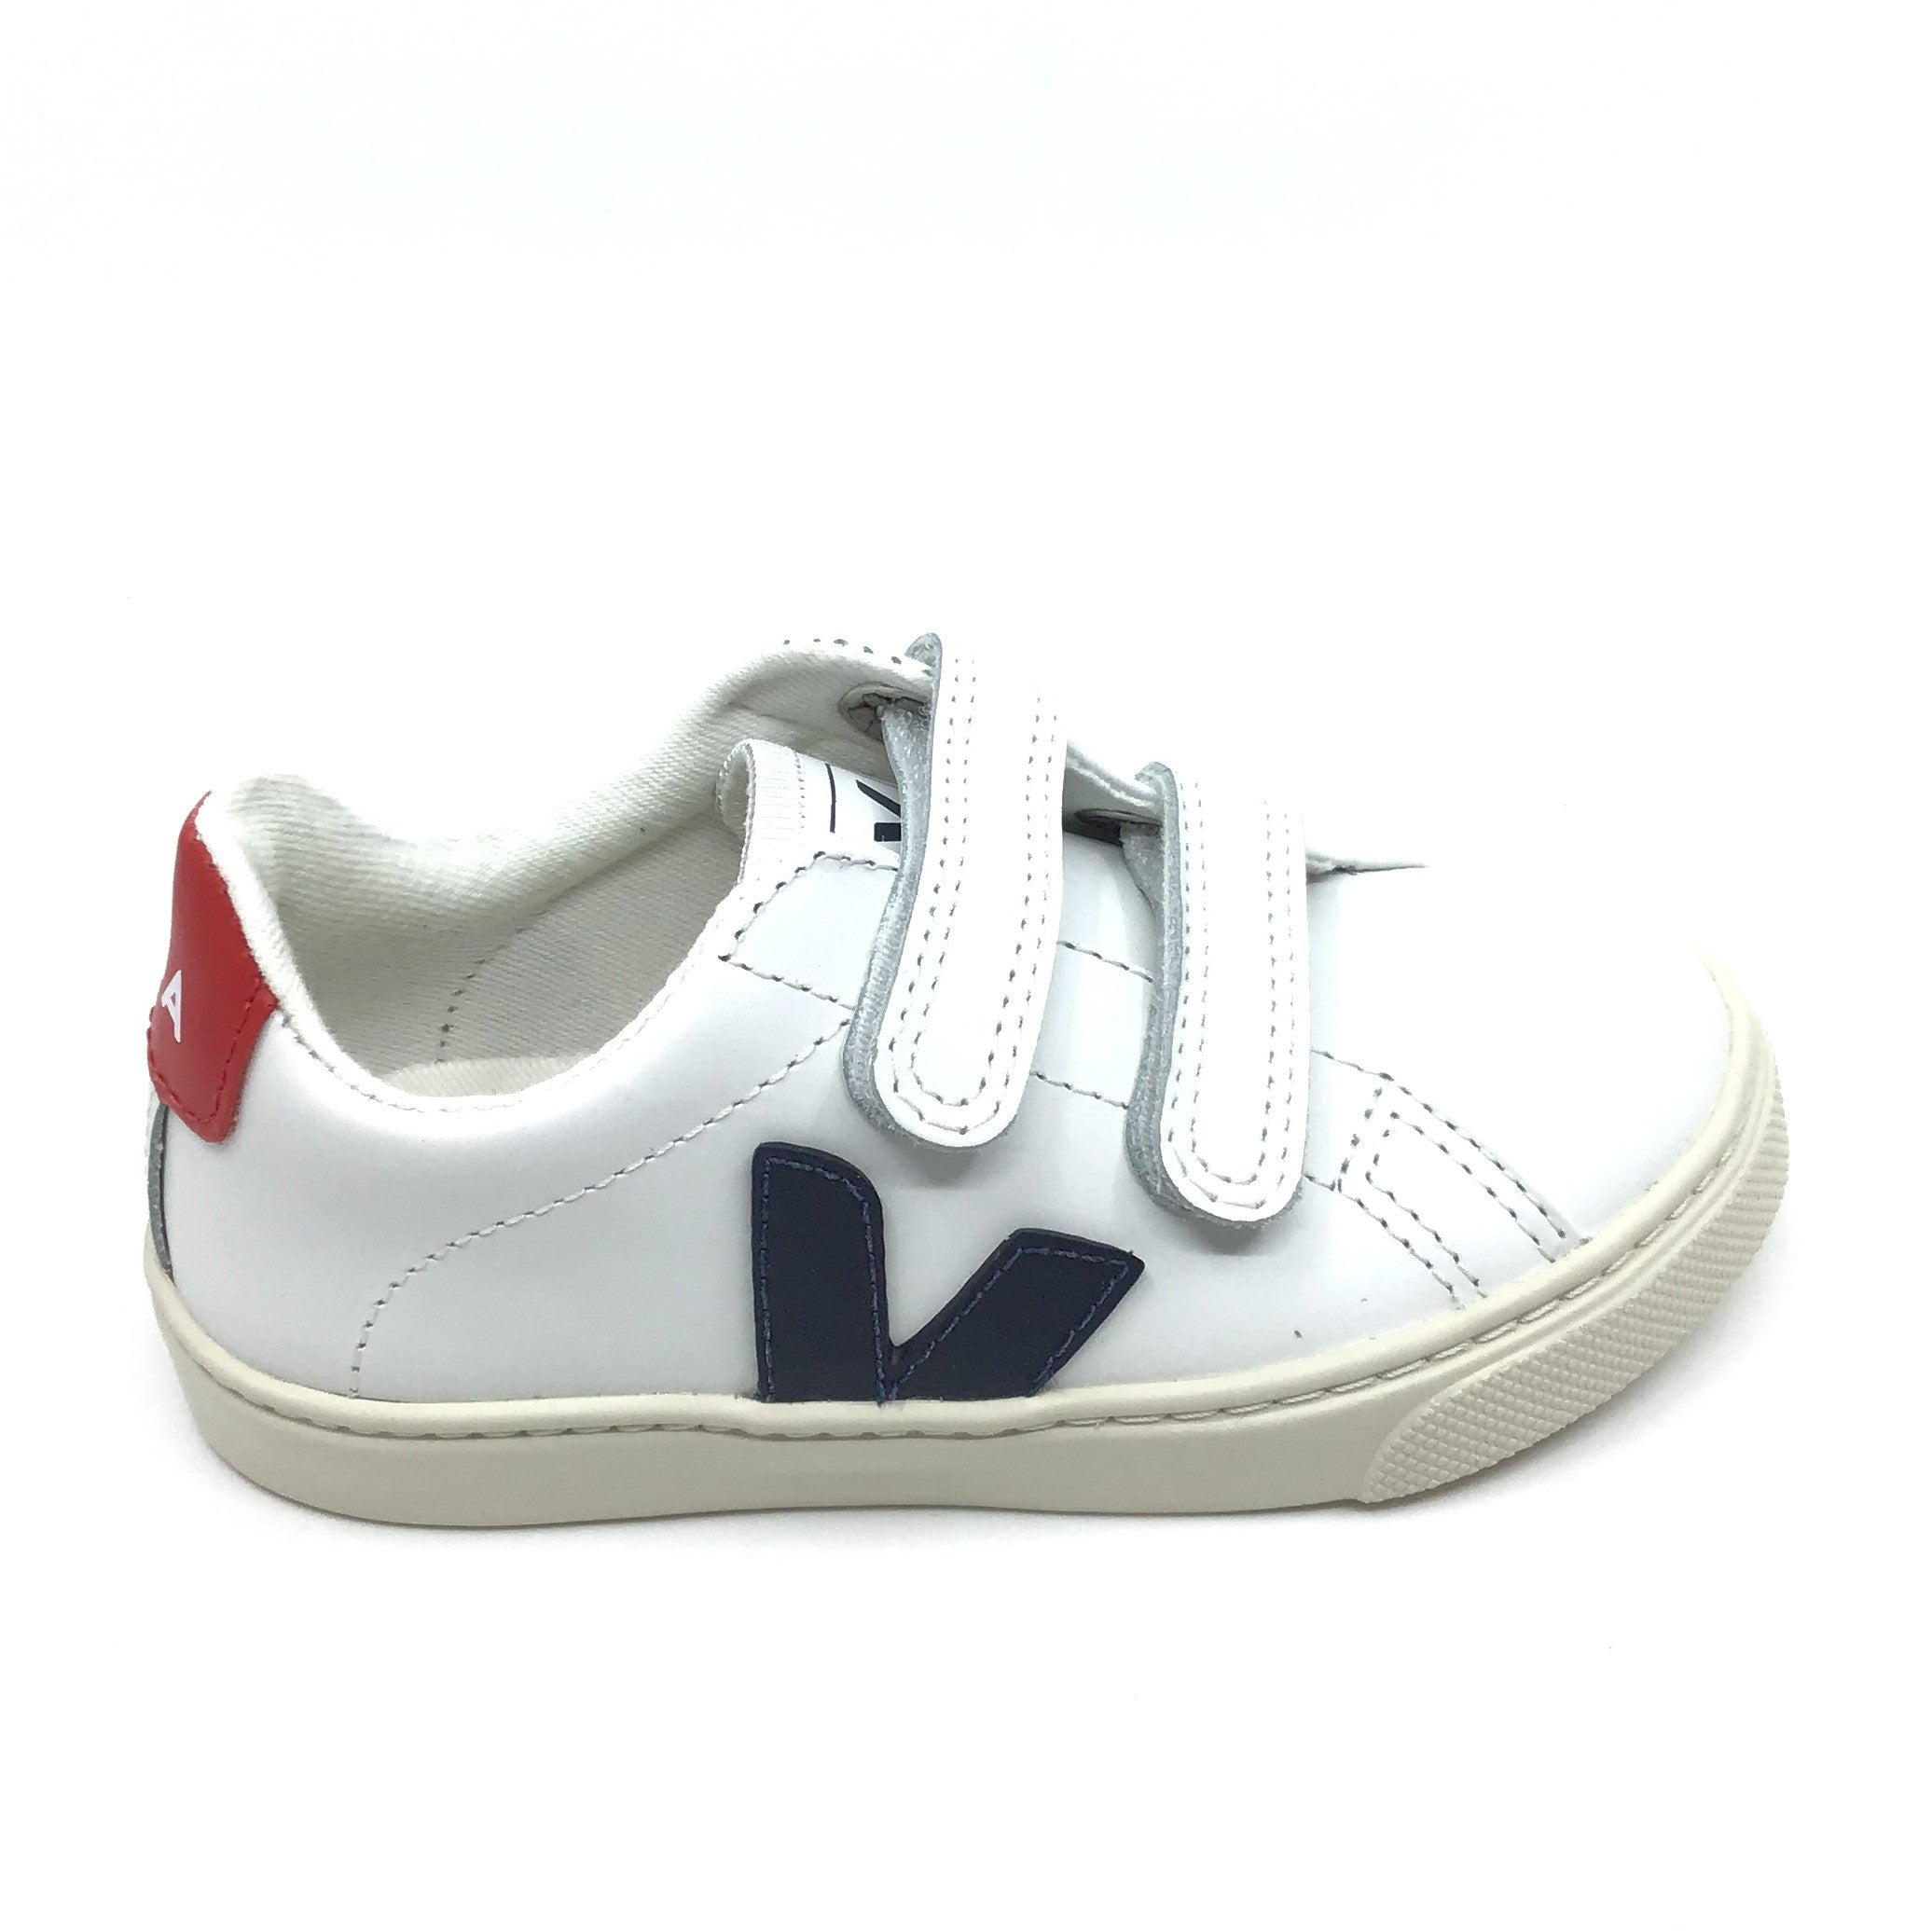 Veja White Sneaker with Black V